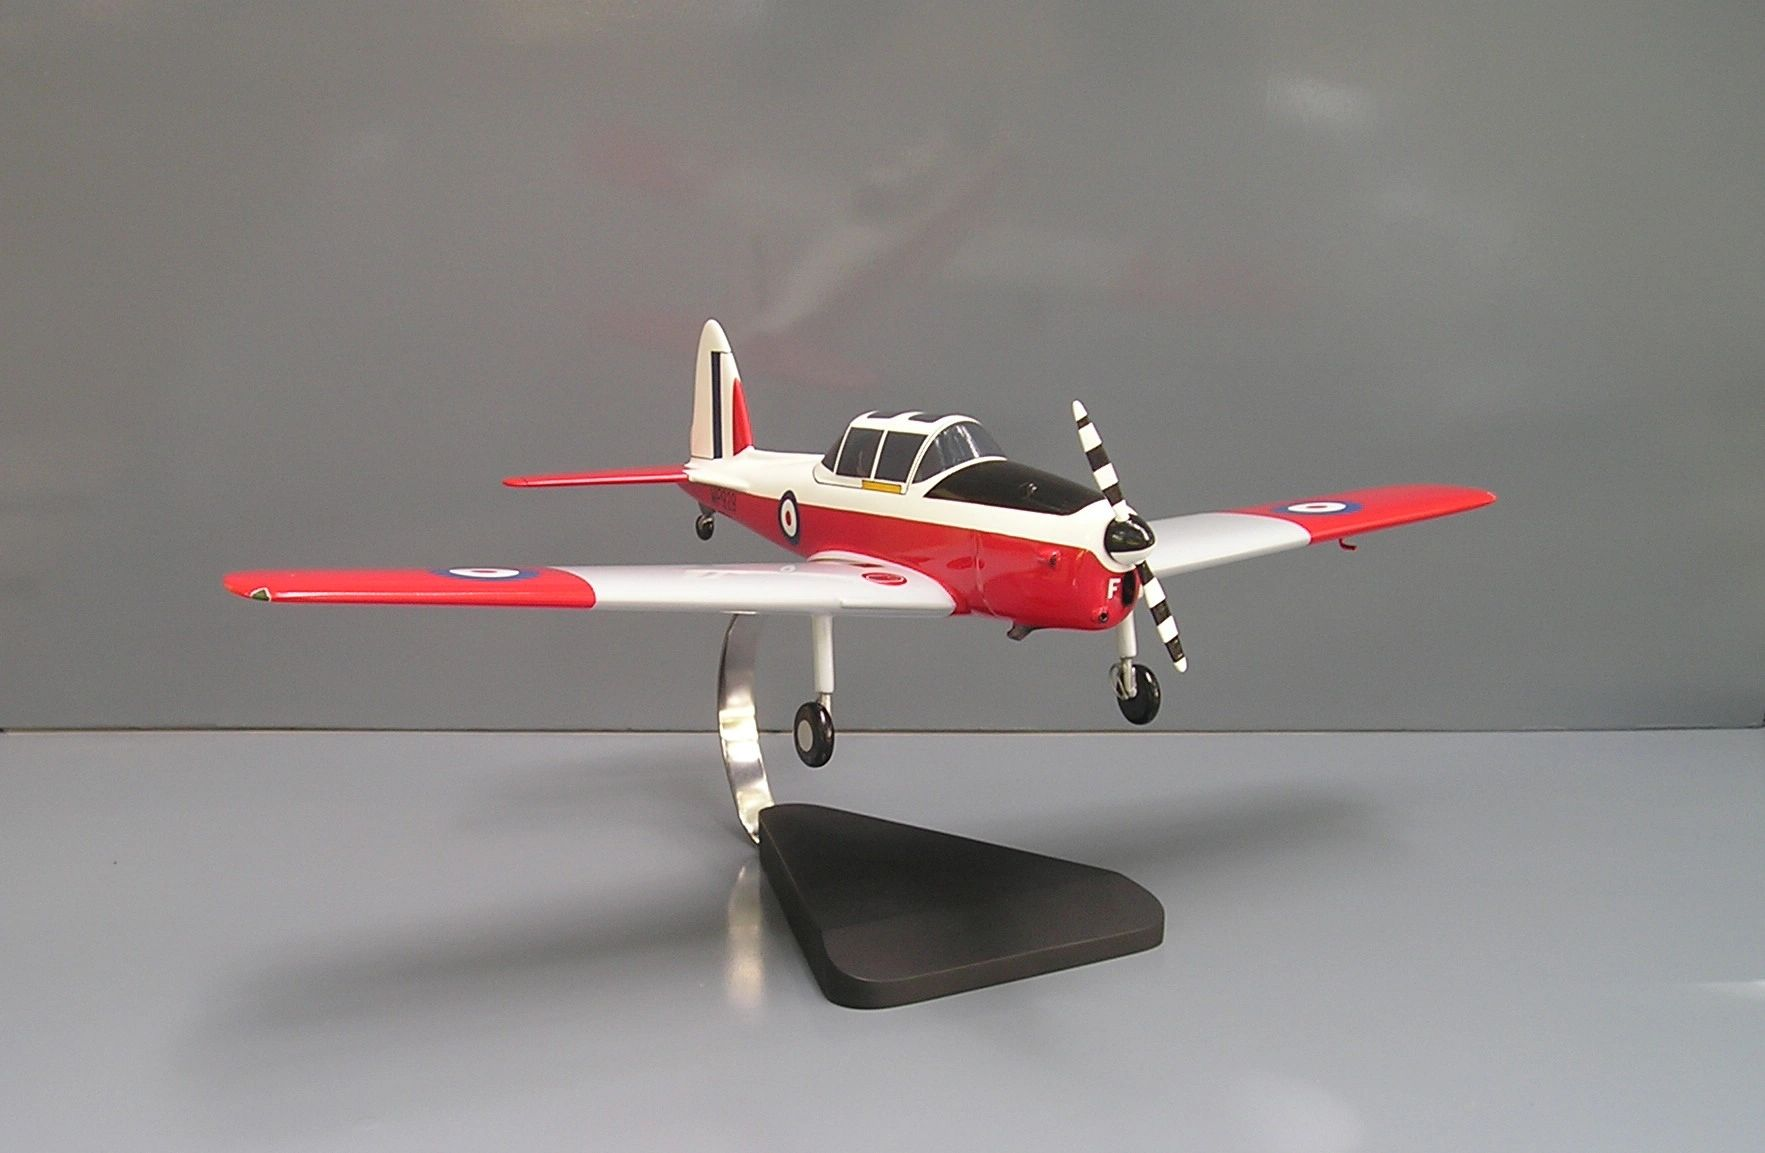 Chipmunk custom model